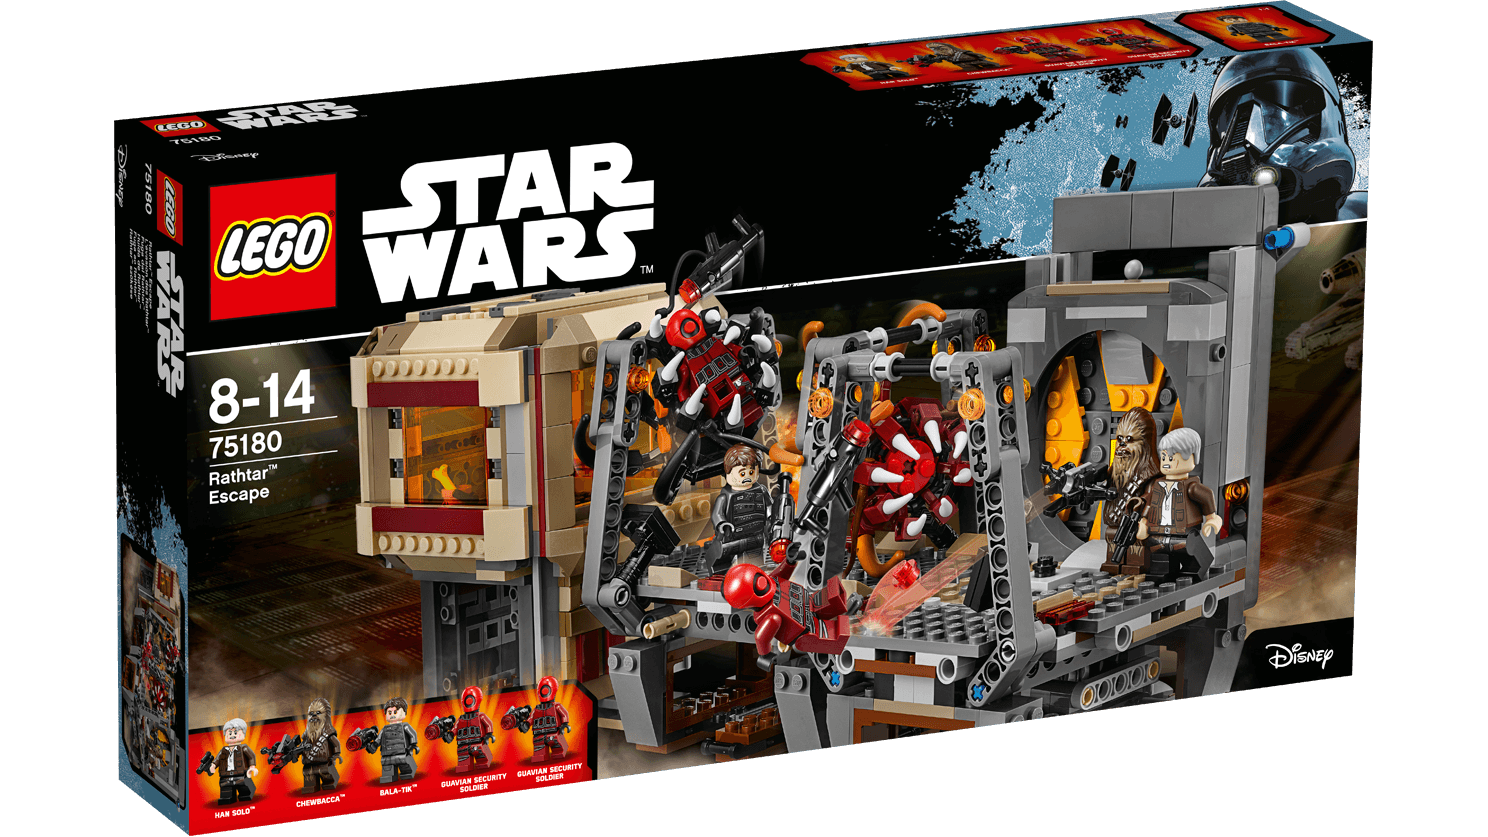 Star Wars: Rathtar Escape LEGO set is a fun set for 'The Force Awakens' fans